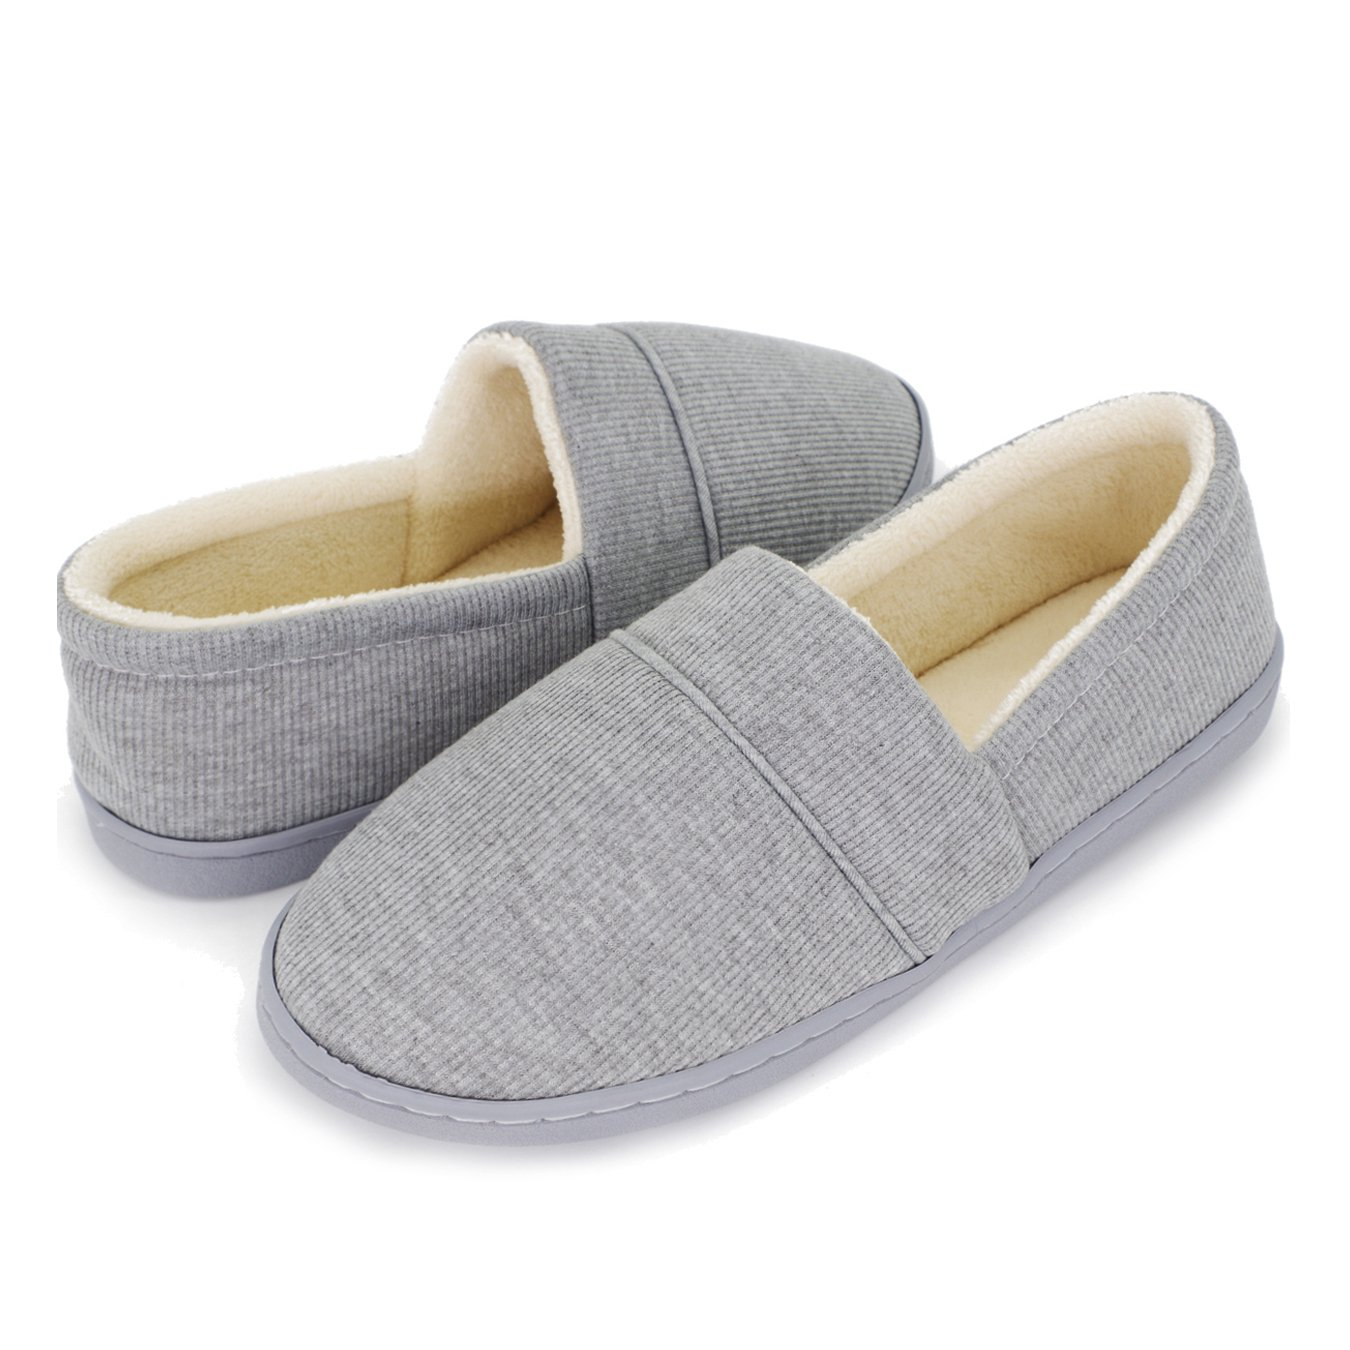 Moodeng Cotton Slippers for Women Knit Anti-Slip Lightweight Soft Comfort House Slippers Slip-on Velvety Home Shoes by Moodeng (Image #2)